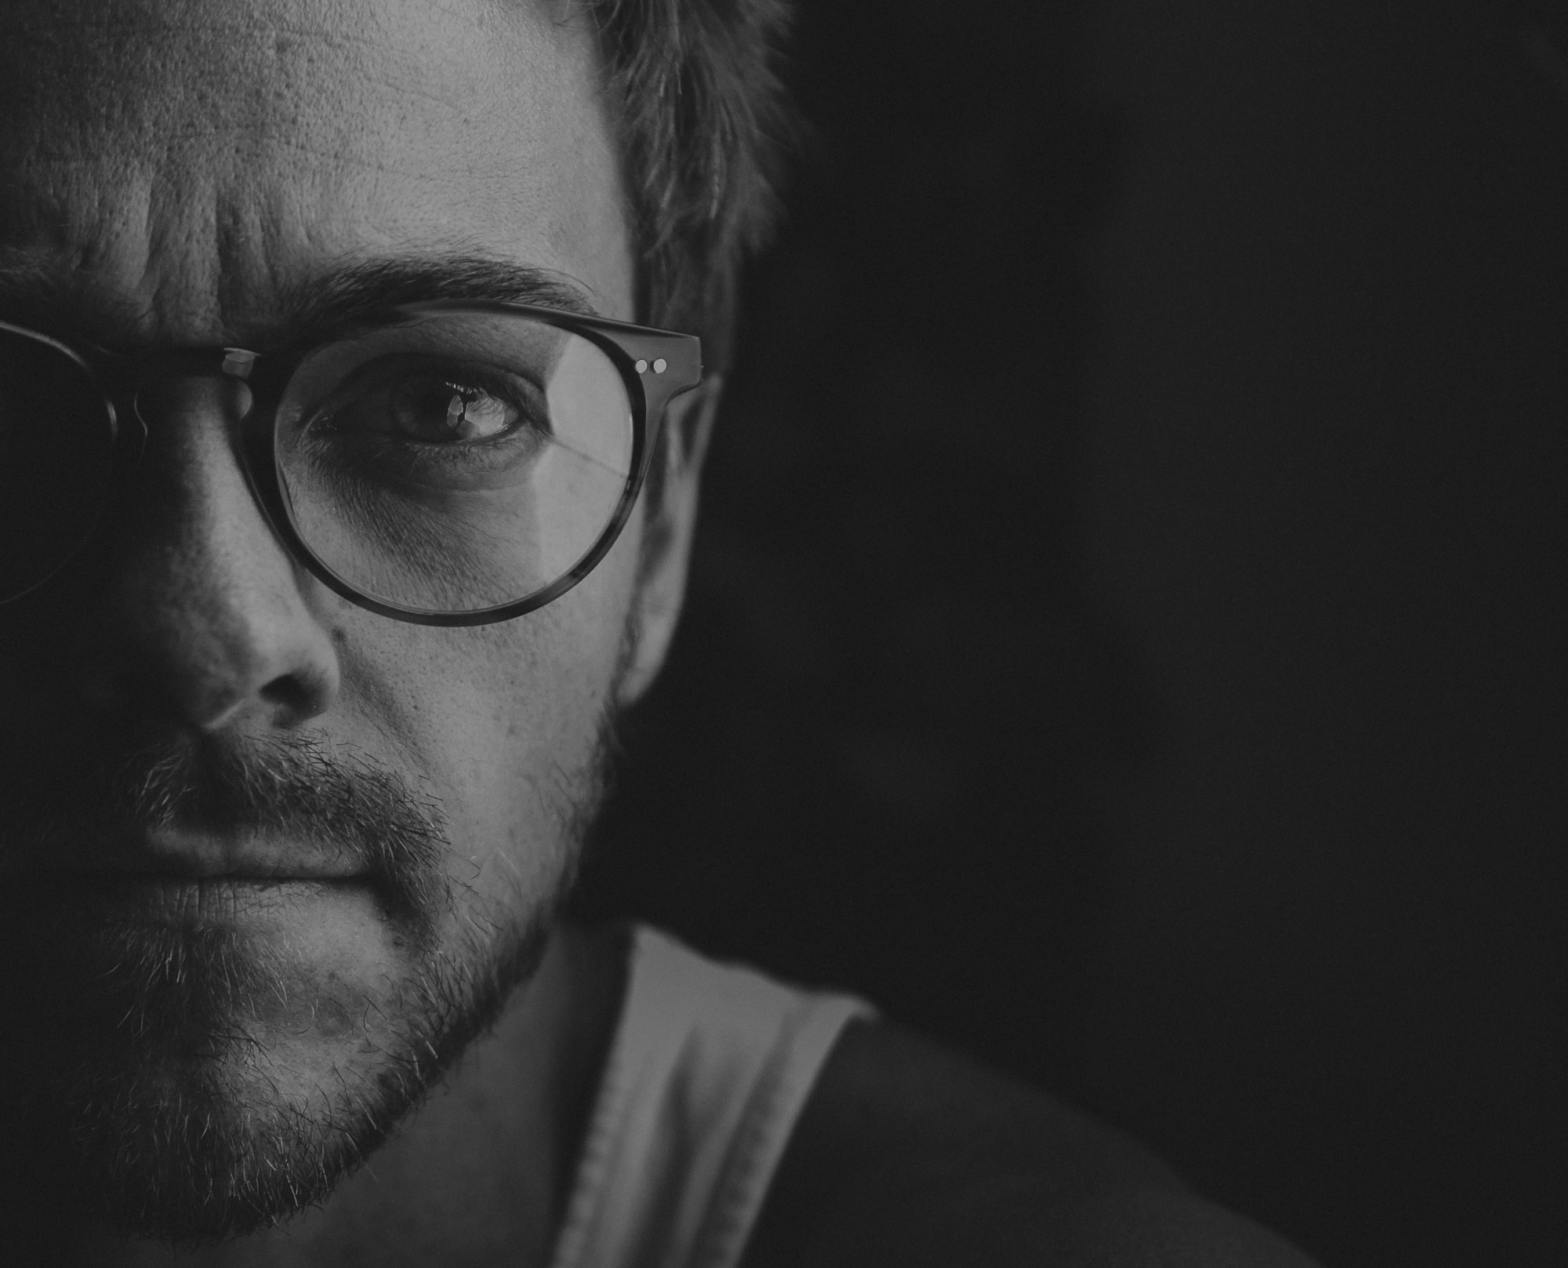 Black and white photo of a man's face–attachment, authenticity, trauma, addiction, recovery